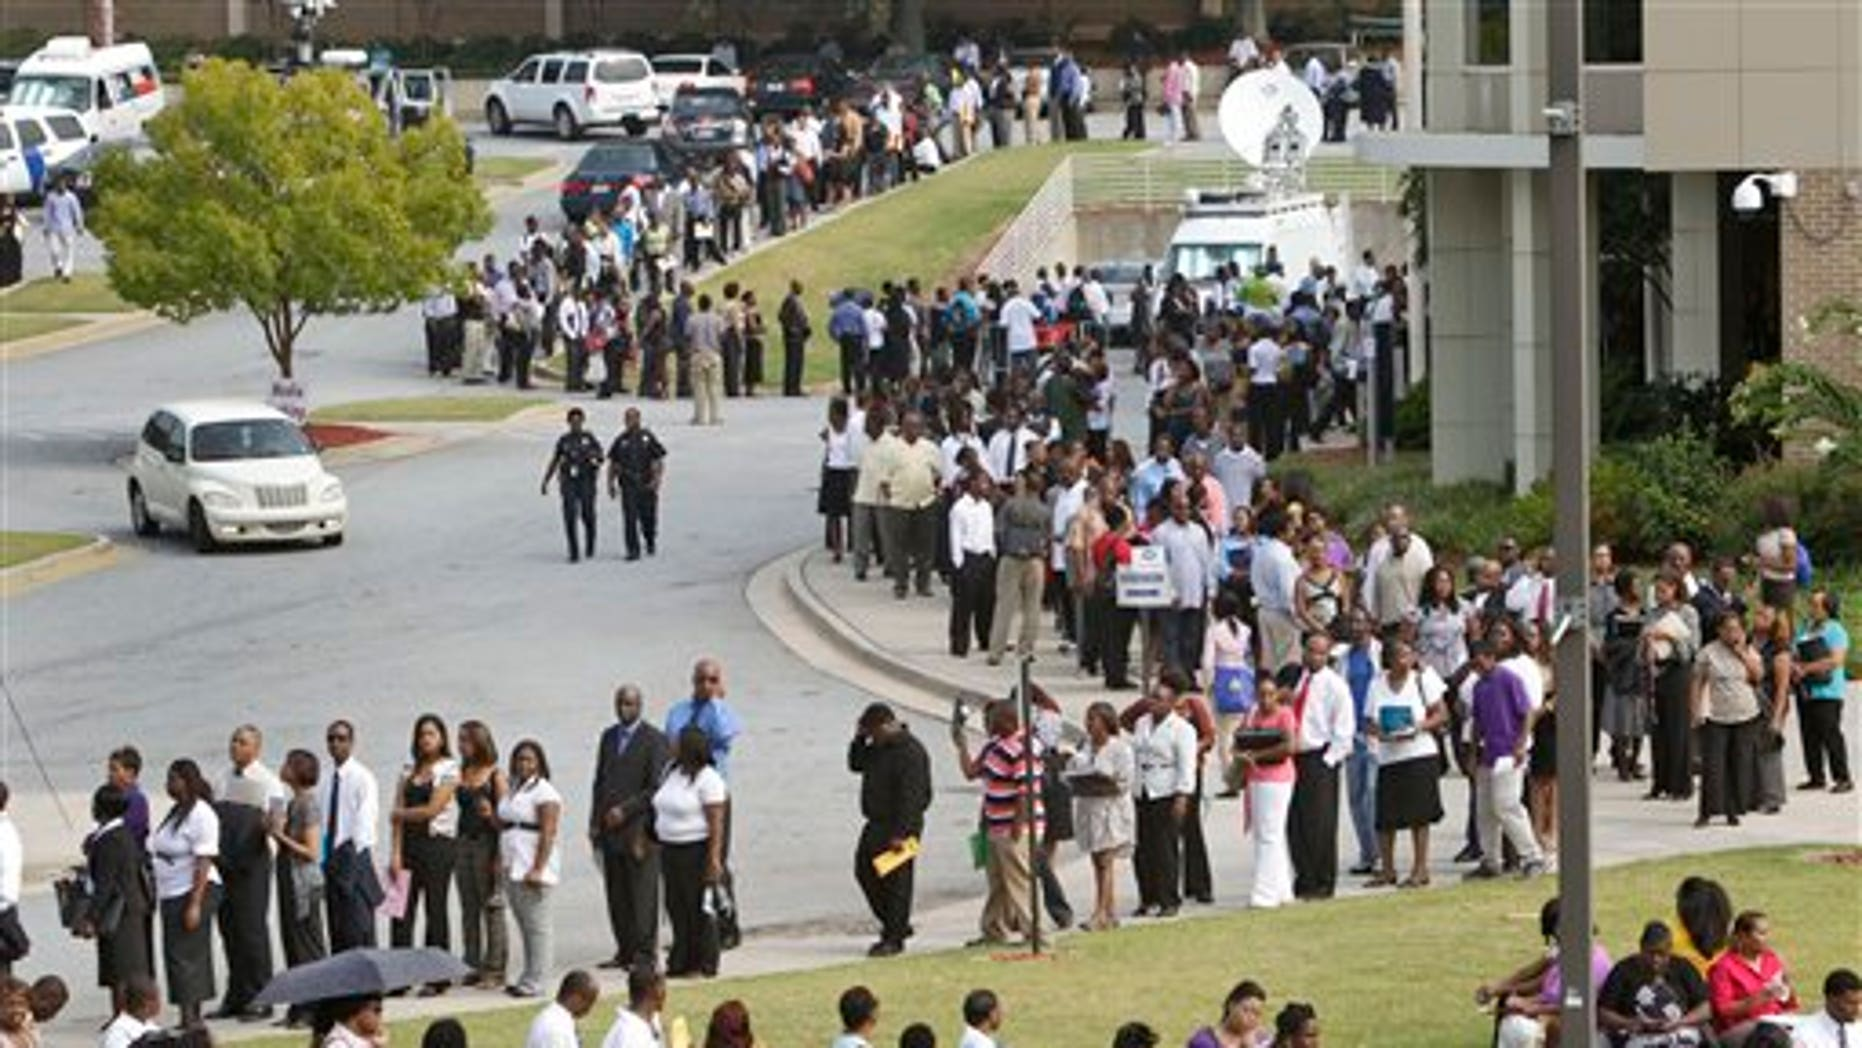 August 18: People wait in line during a job fair, sponsored by the Congressional Black Caucus on the campus of Atlanta Technical College in Atlanta, Georgia.